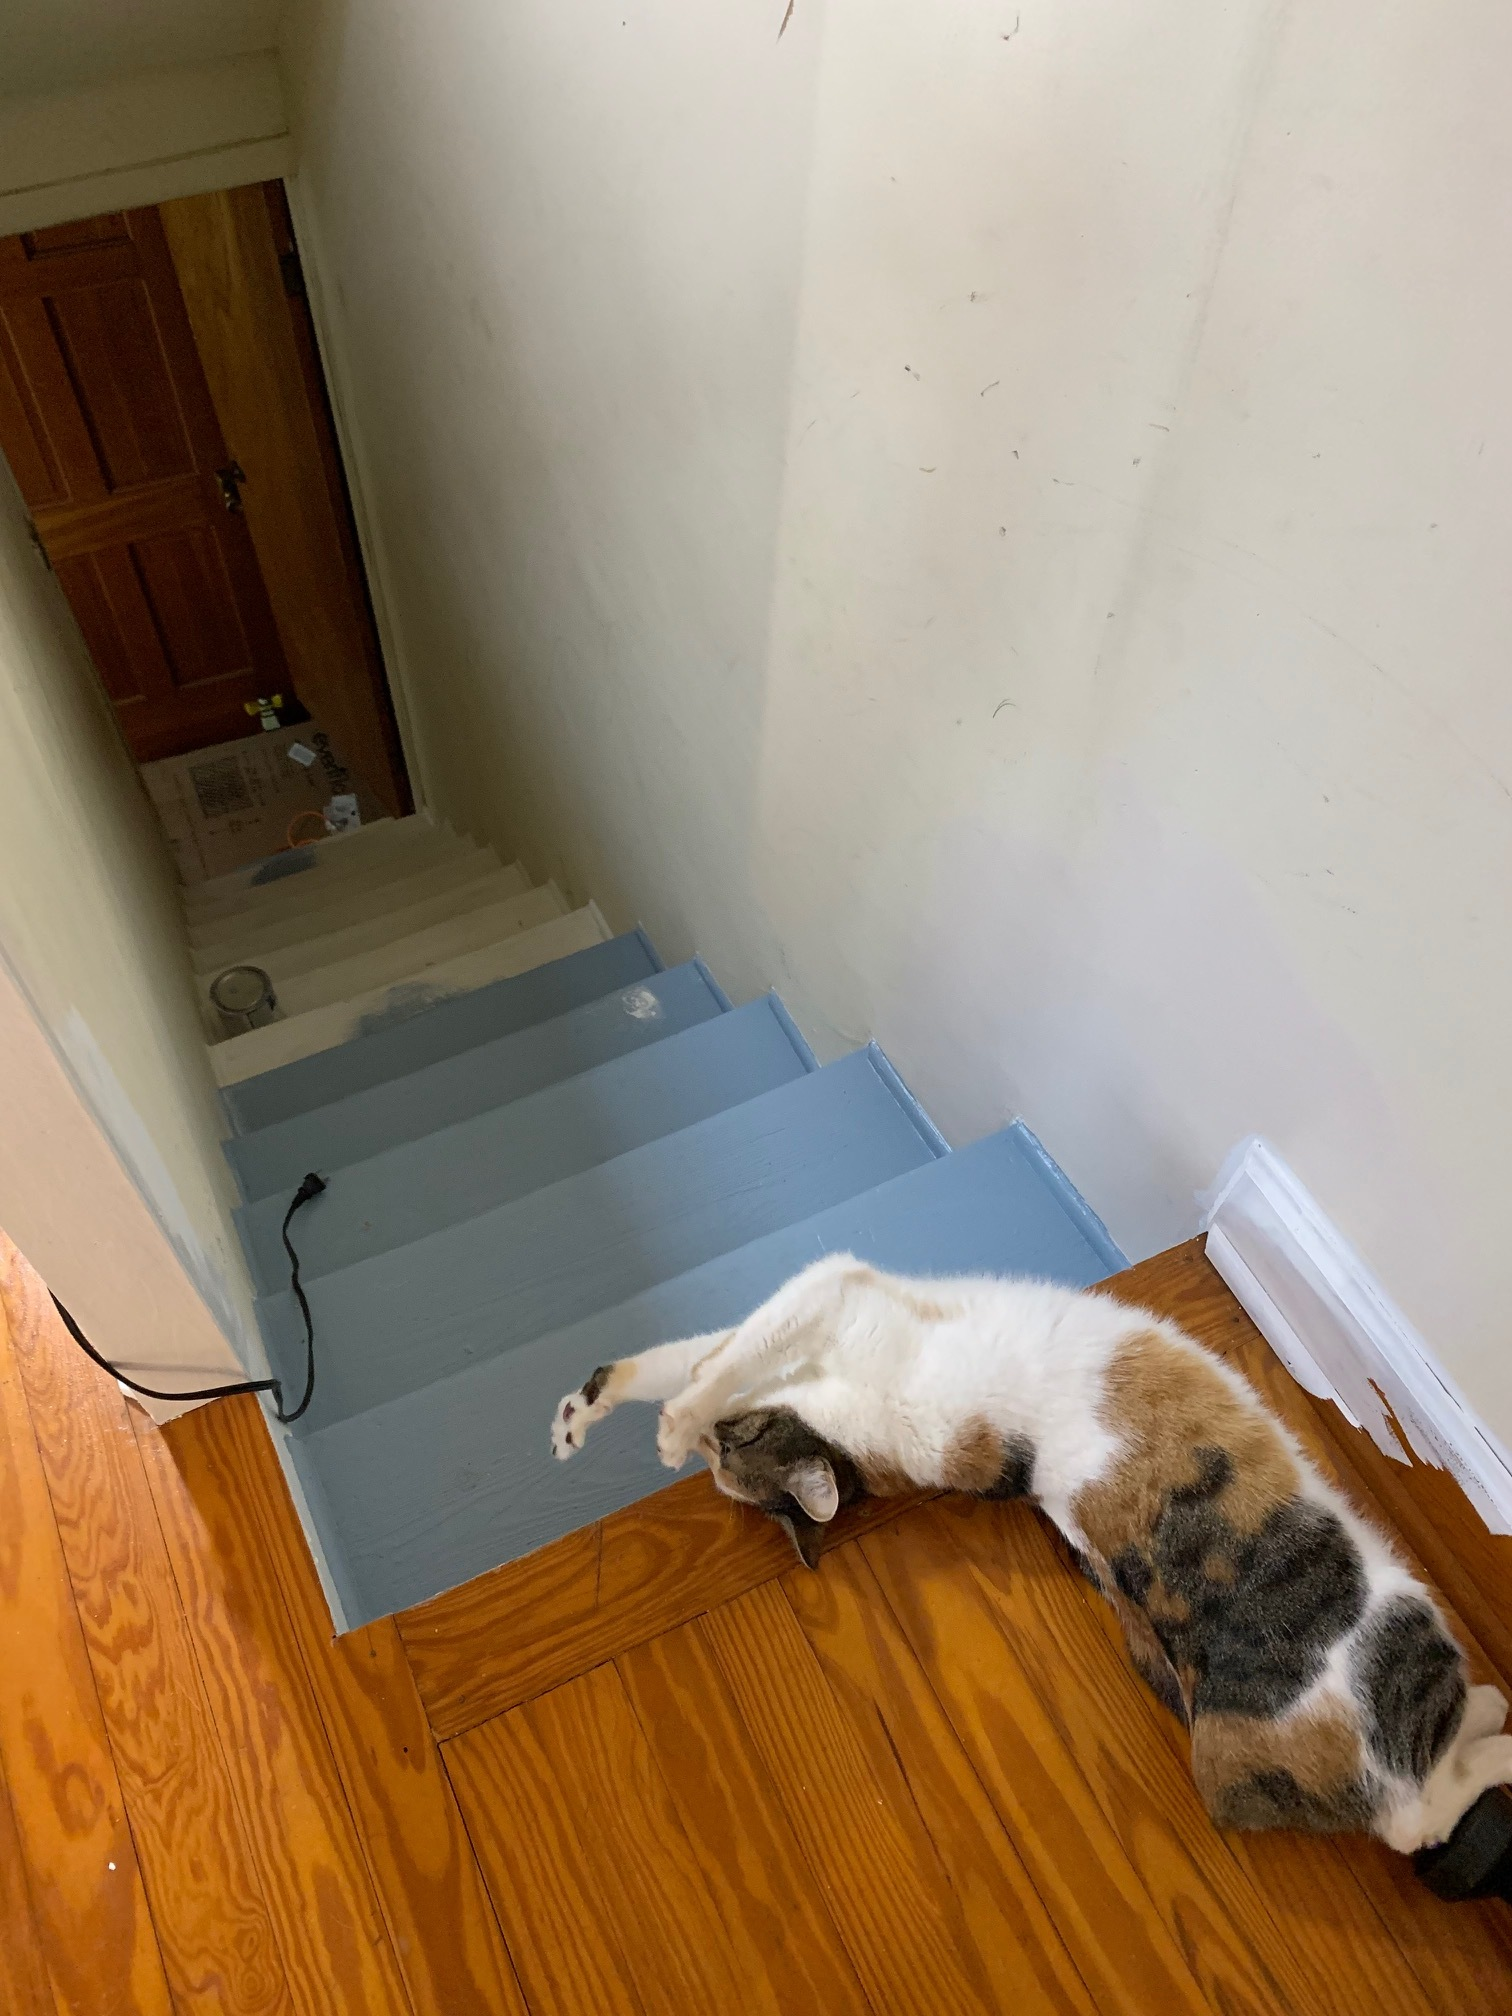 That's Alia Atredes, tailless wonder, at the top of the narrow staircase … which I really love (architecture and quadruped) … until it's time to schlep large furniture upstairs!